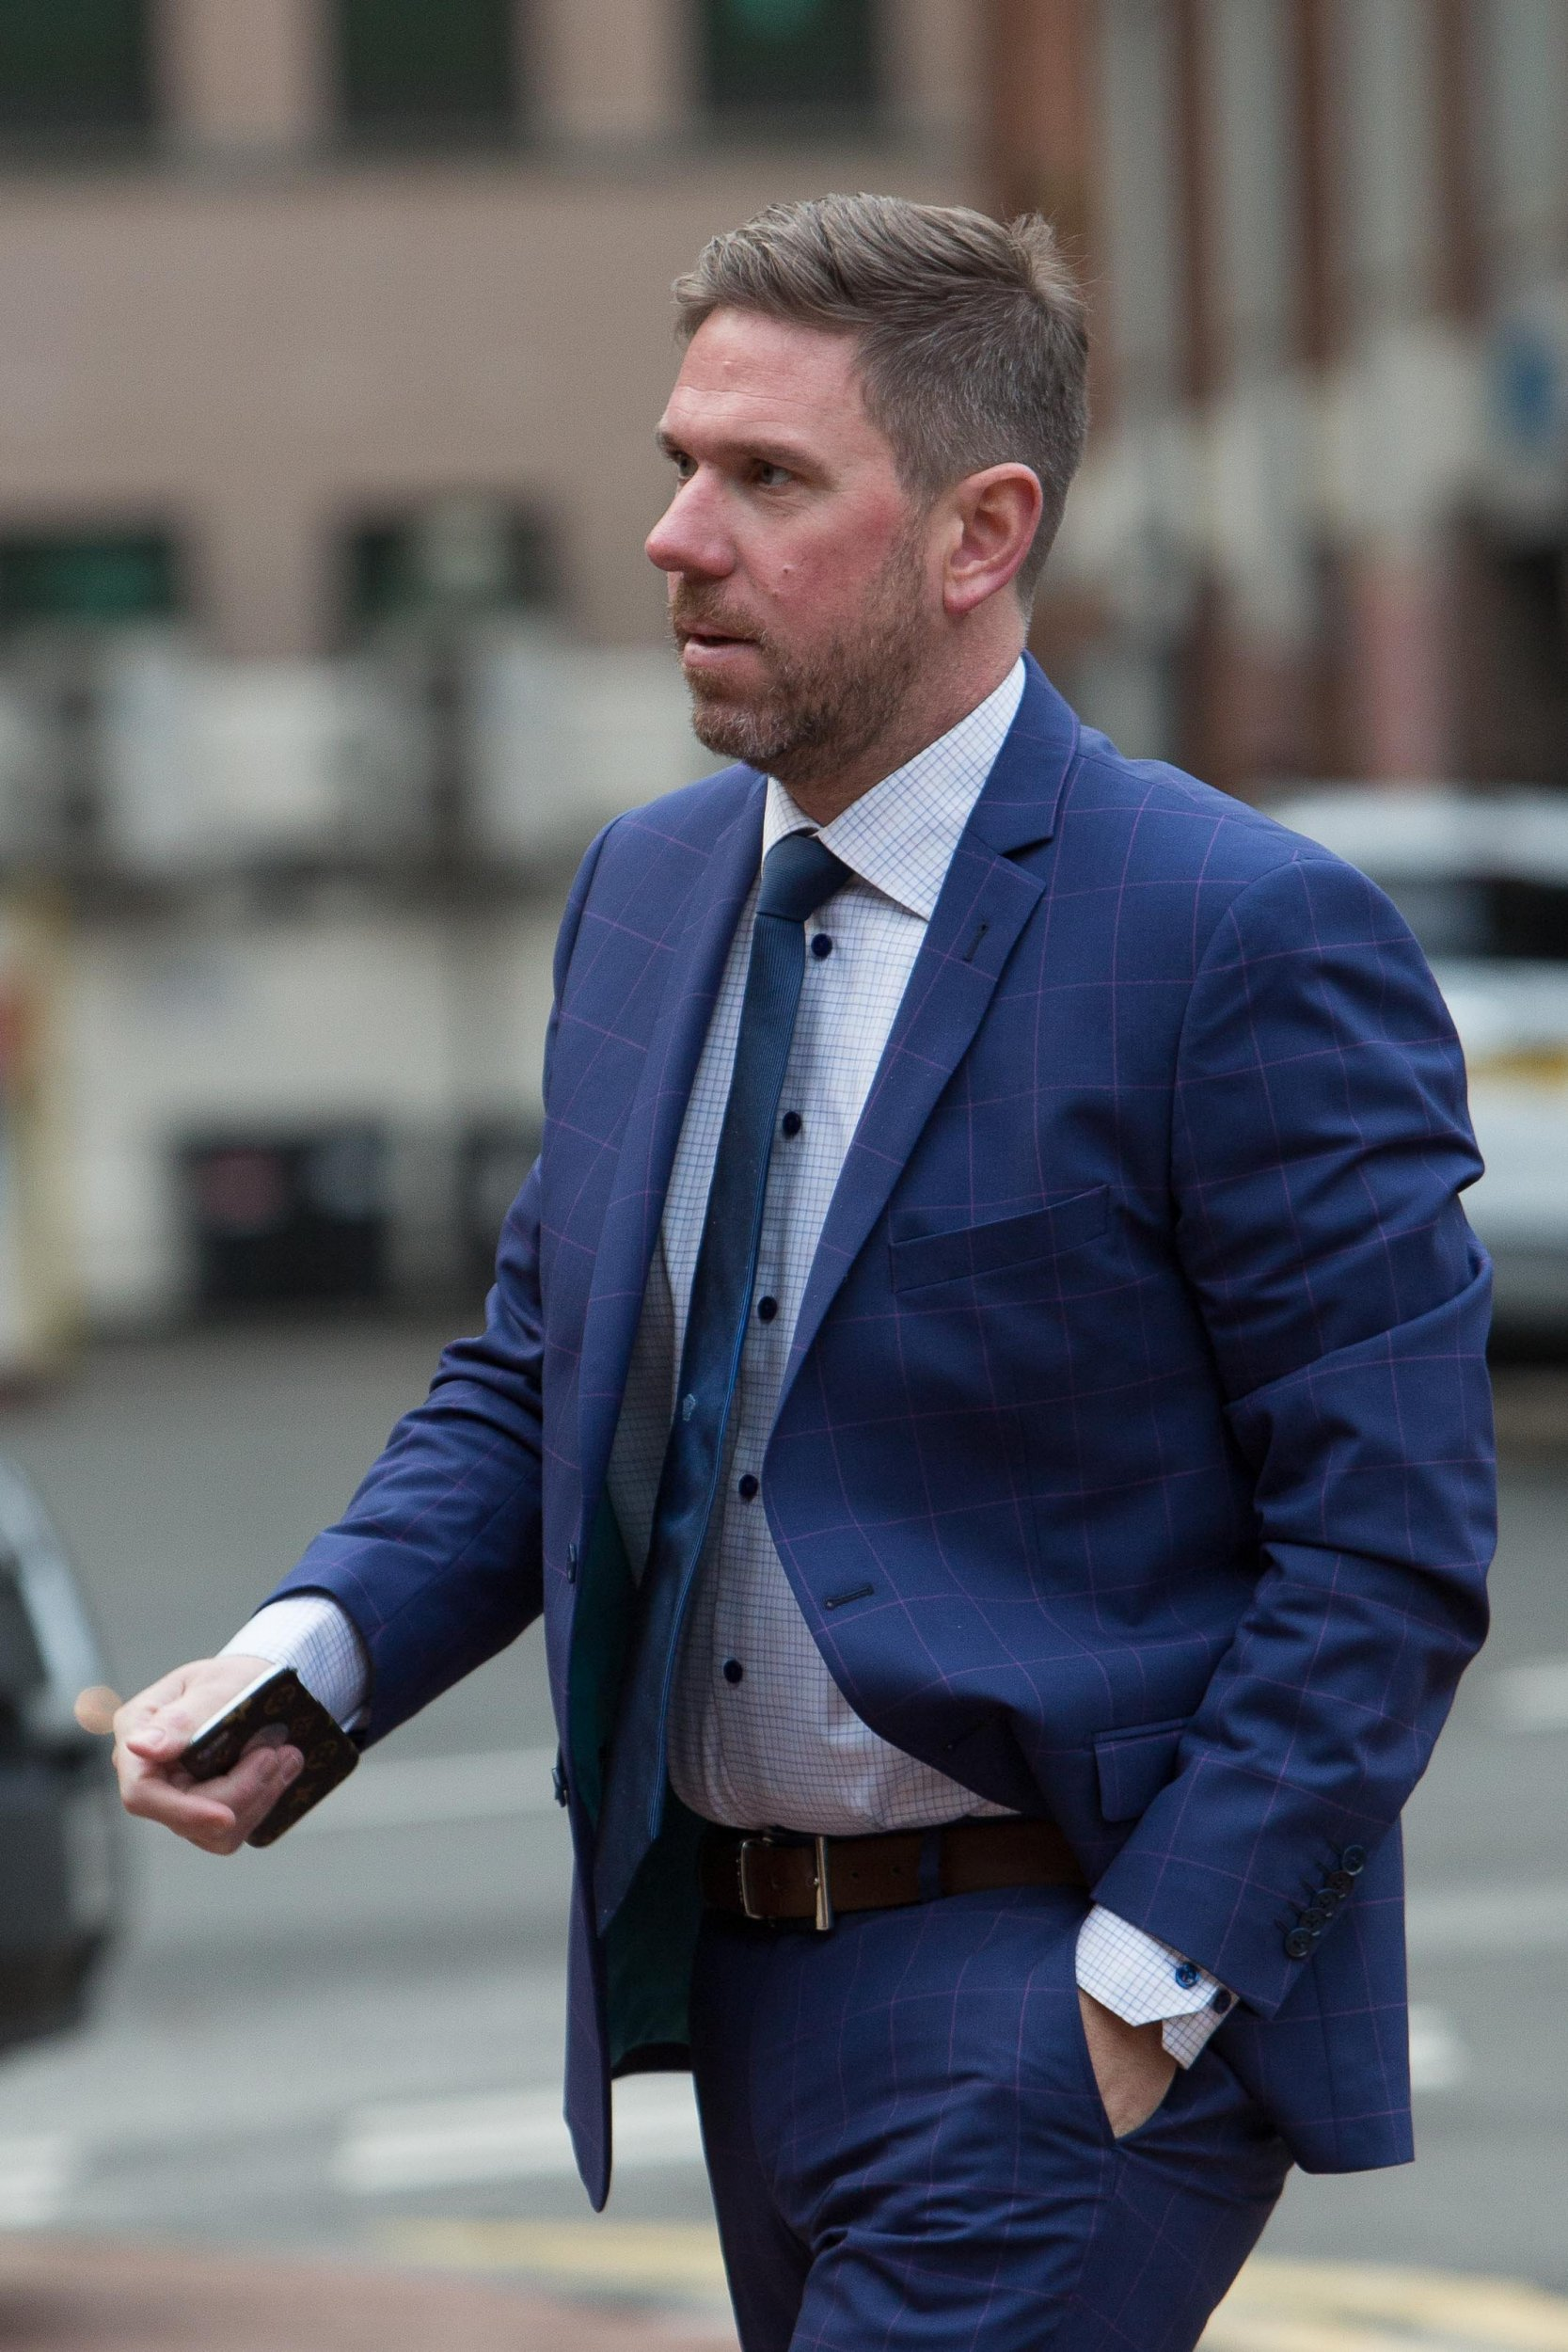 """John Broadhurst arriving at Birmingham Crown Court. December 11, 2018. See SWNS story SWMDkilling. A businessman accused of murdering his lover in a drink and drug-fuelled sex session """"wanted to teach her a lesson,"""" a court has heard. John Broadhurst is accused of 26-year-old Natalie Connolly's murder at their home in Kinver, near Stourbridge, in December 2016. Ms Connolly was found naked in a pool of blood at the foot of the stairs, the court heard. Mr Broadhurst, 40, from Wolverley, near Kidderminster, denies murder but is expected to change his plea today."""